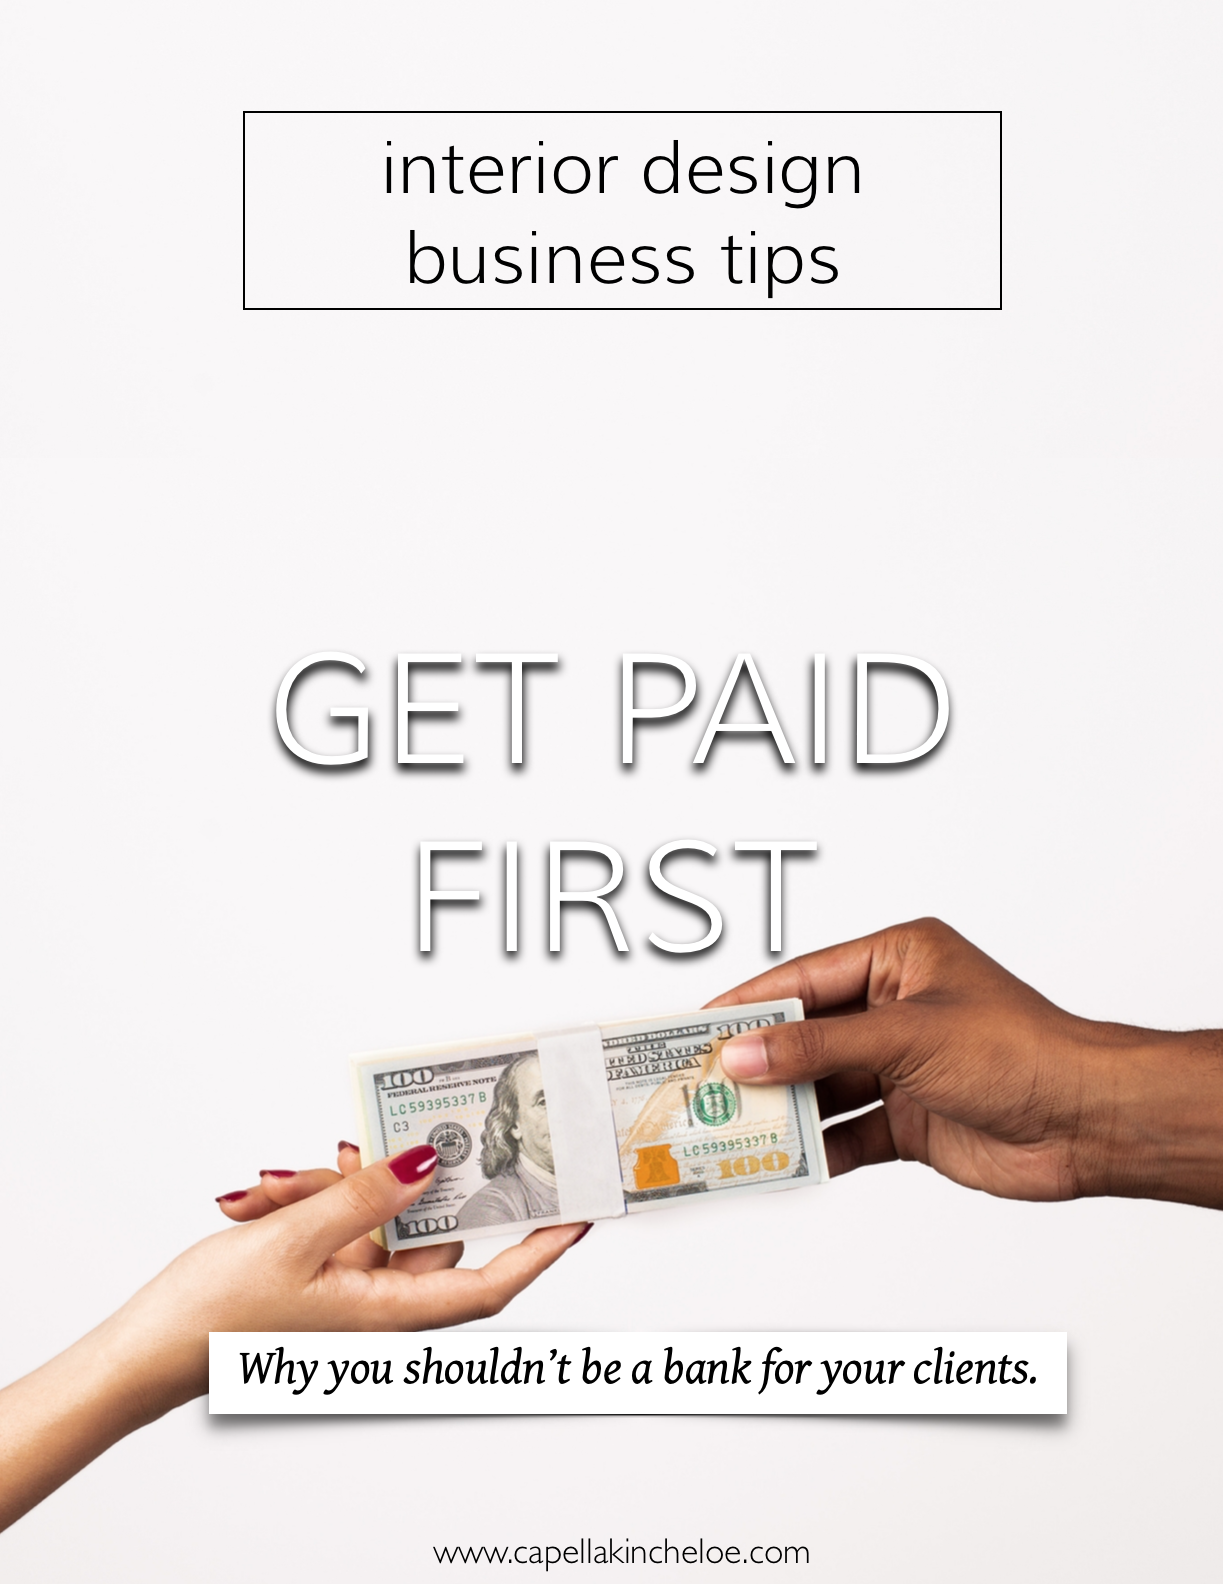 Interior designer! You should not be paying for things without being paid first. #getpaid #interiordesignbusiness #cktradesecrets #capellakincheloe